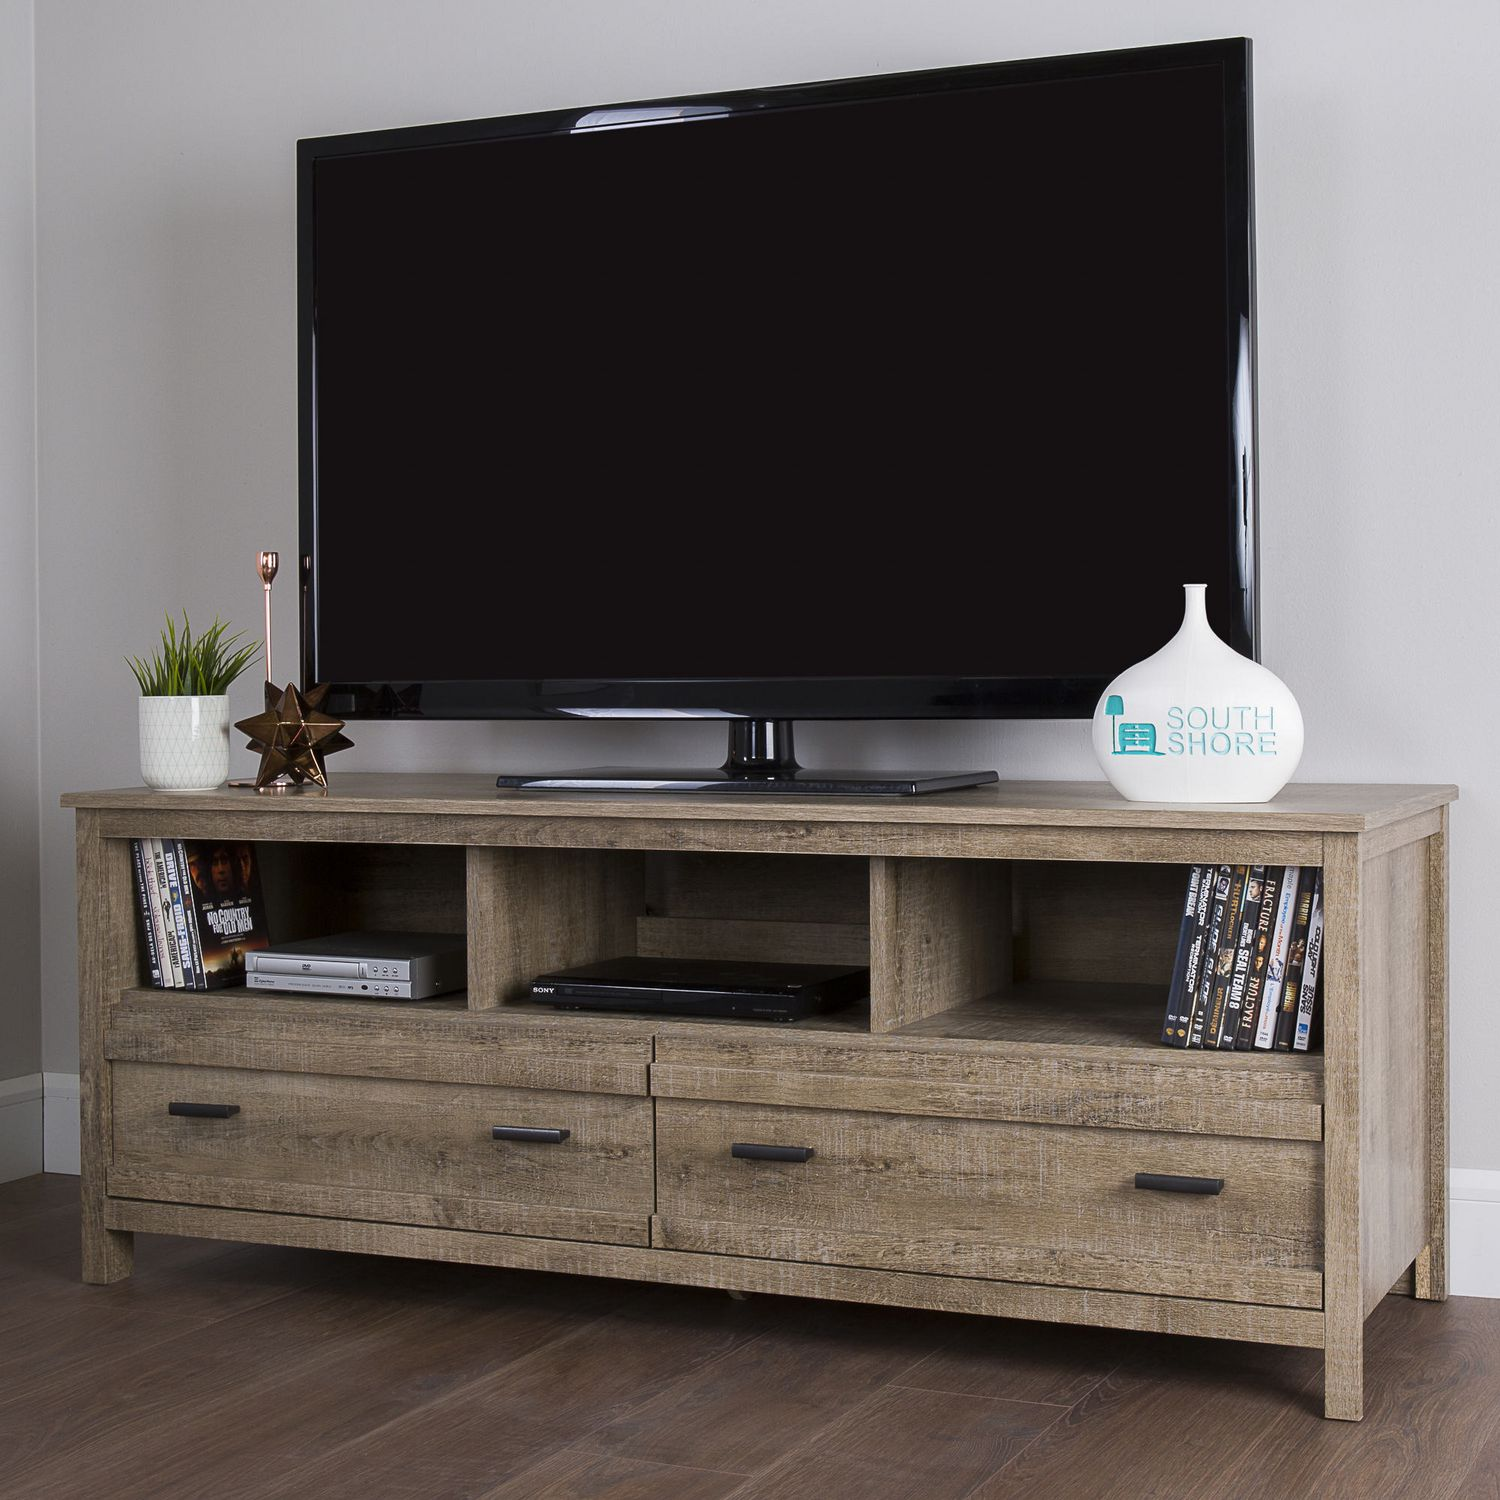 South Shore Exhibit Tv Stand For Tvs Up To 60 Inches Walmart Canada